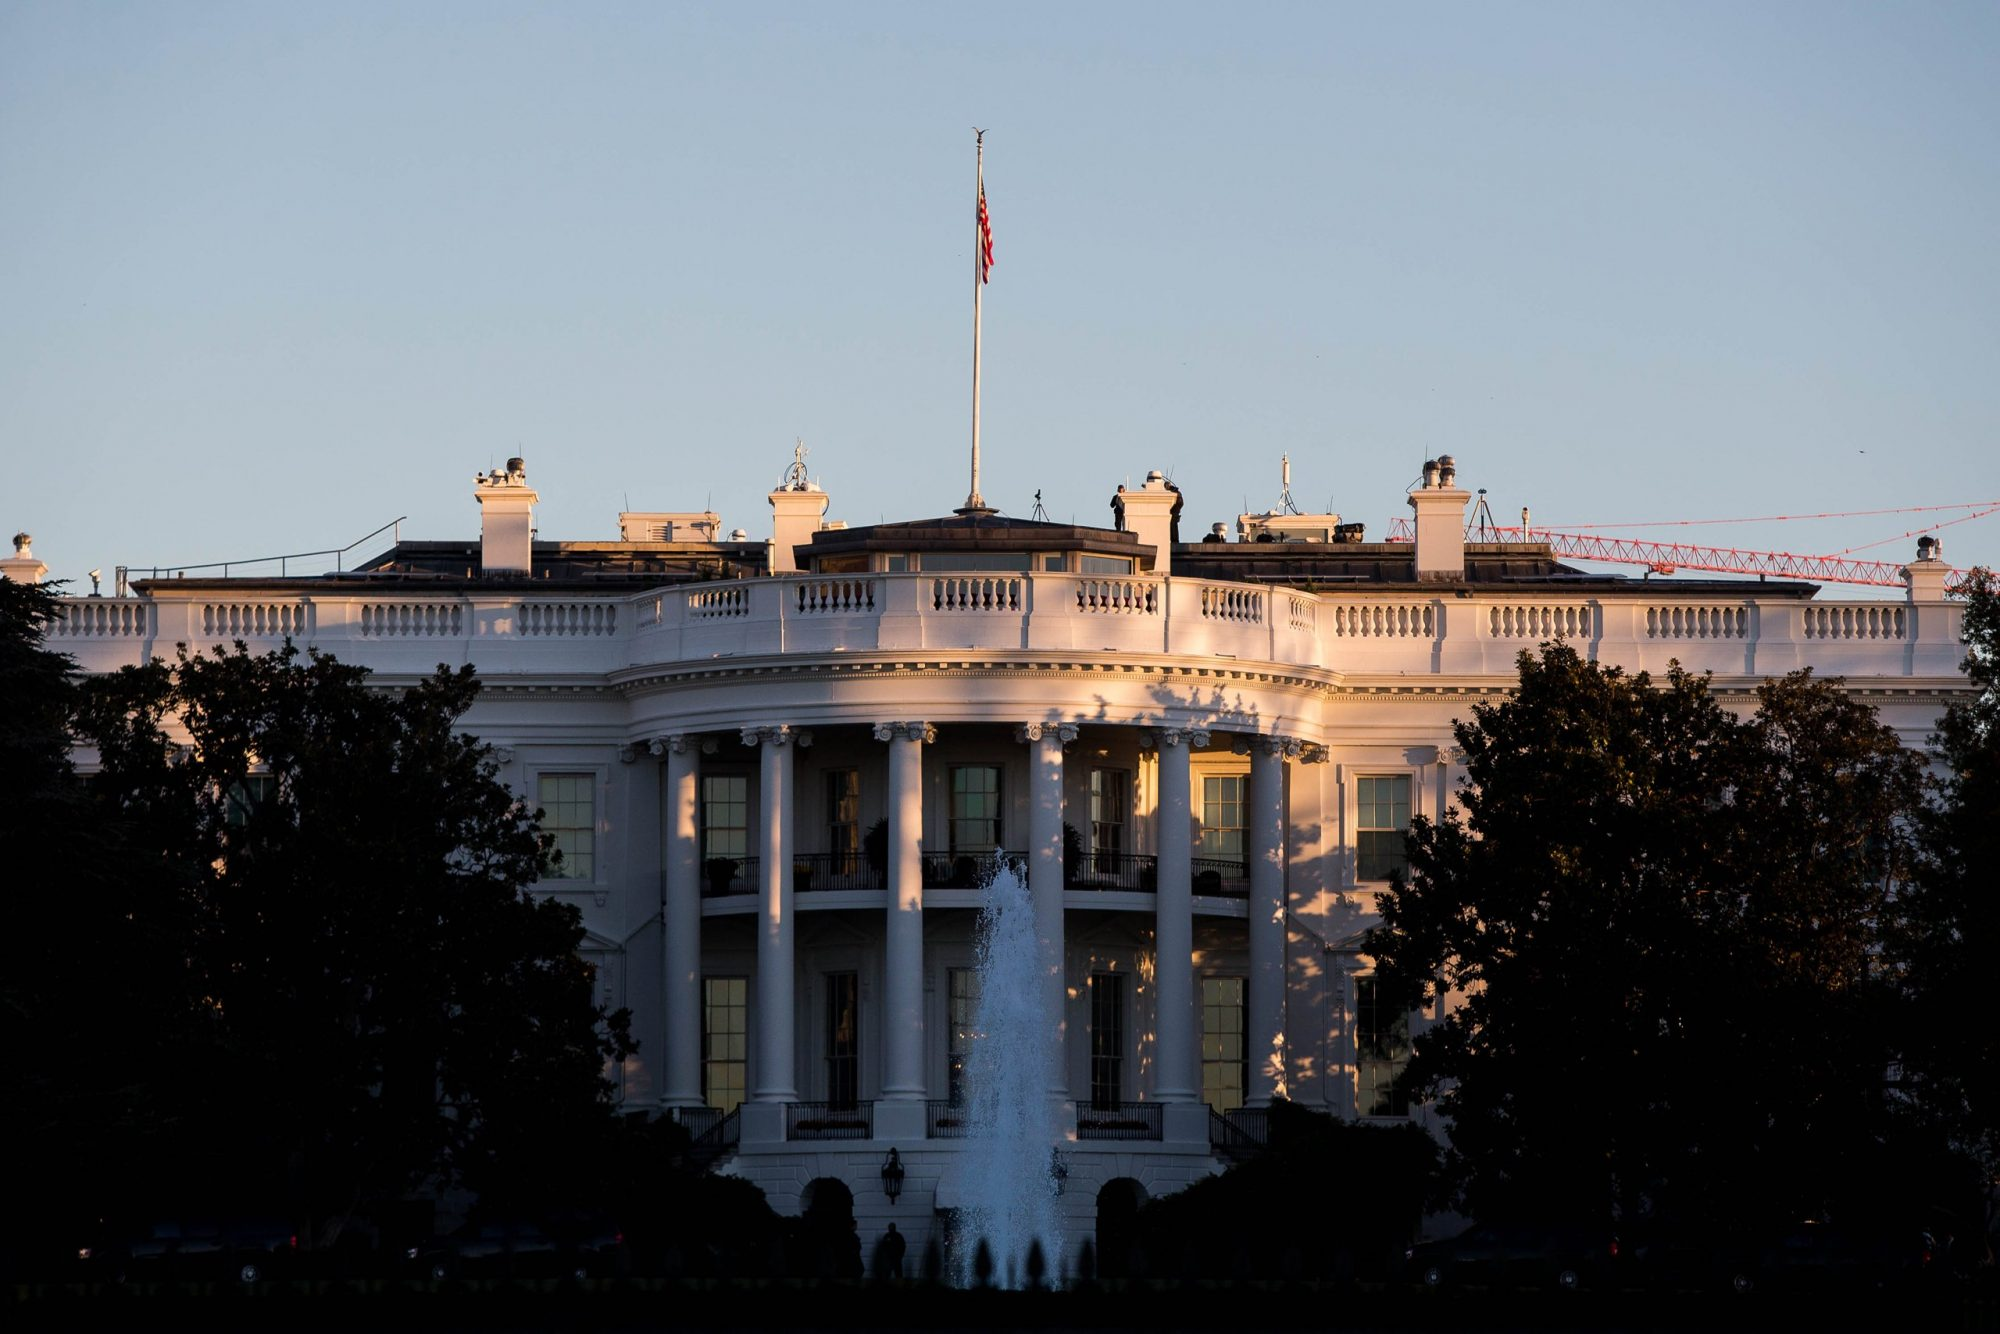 Zillow Put a Price Tag on the White House and It's Not Cheap